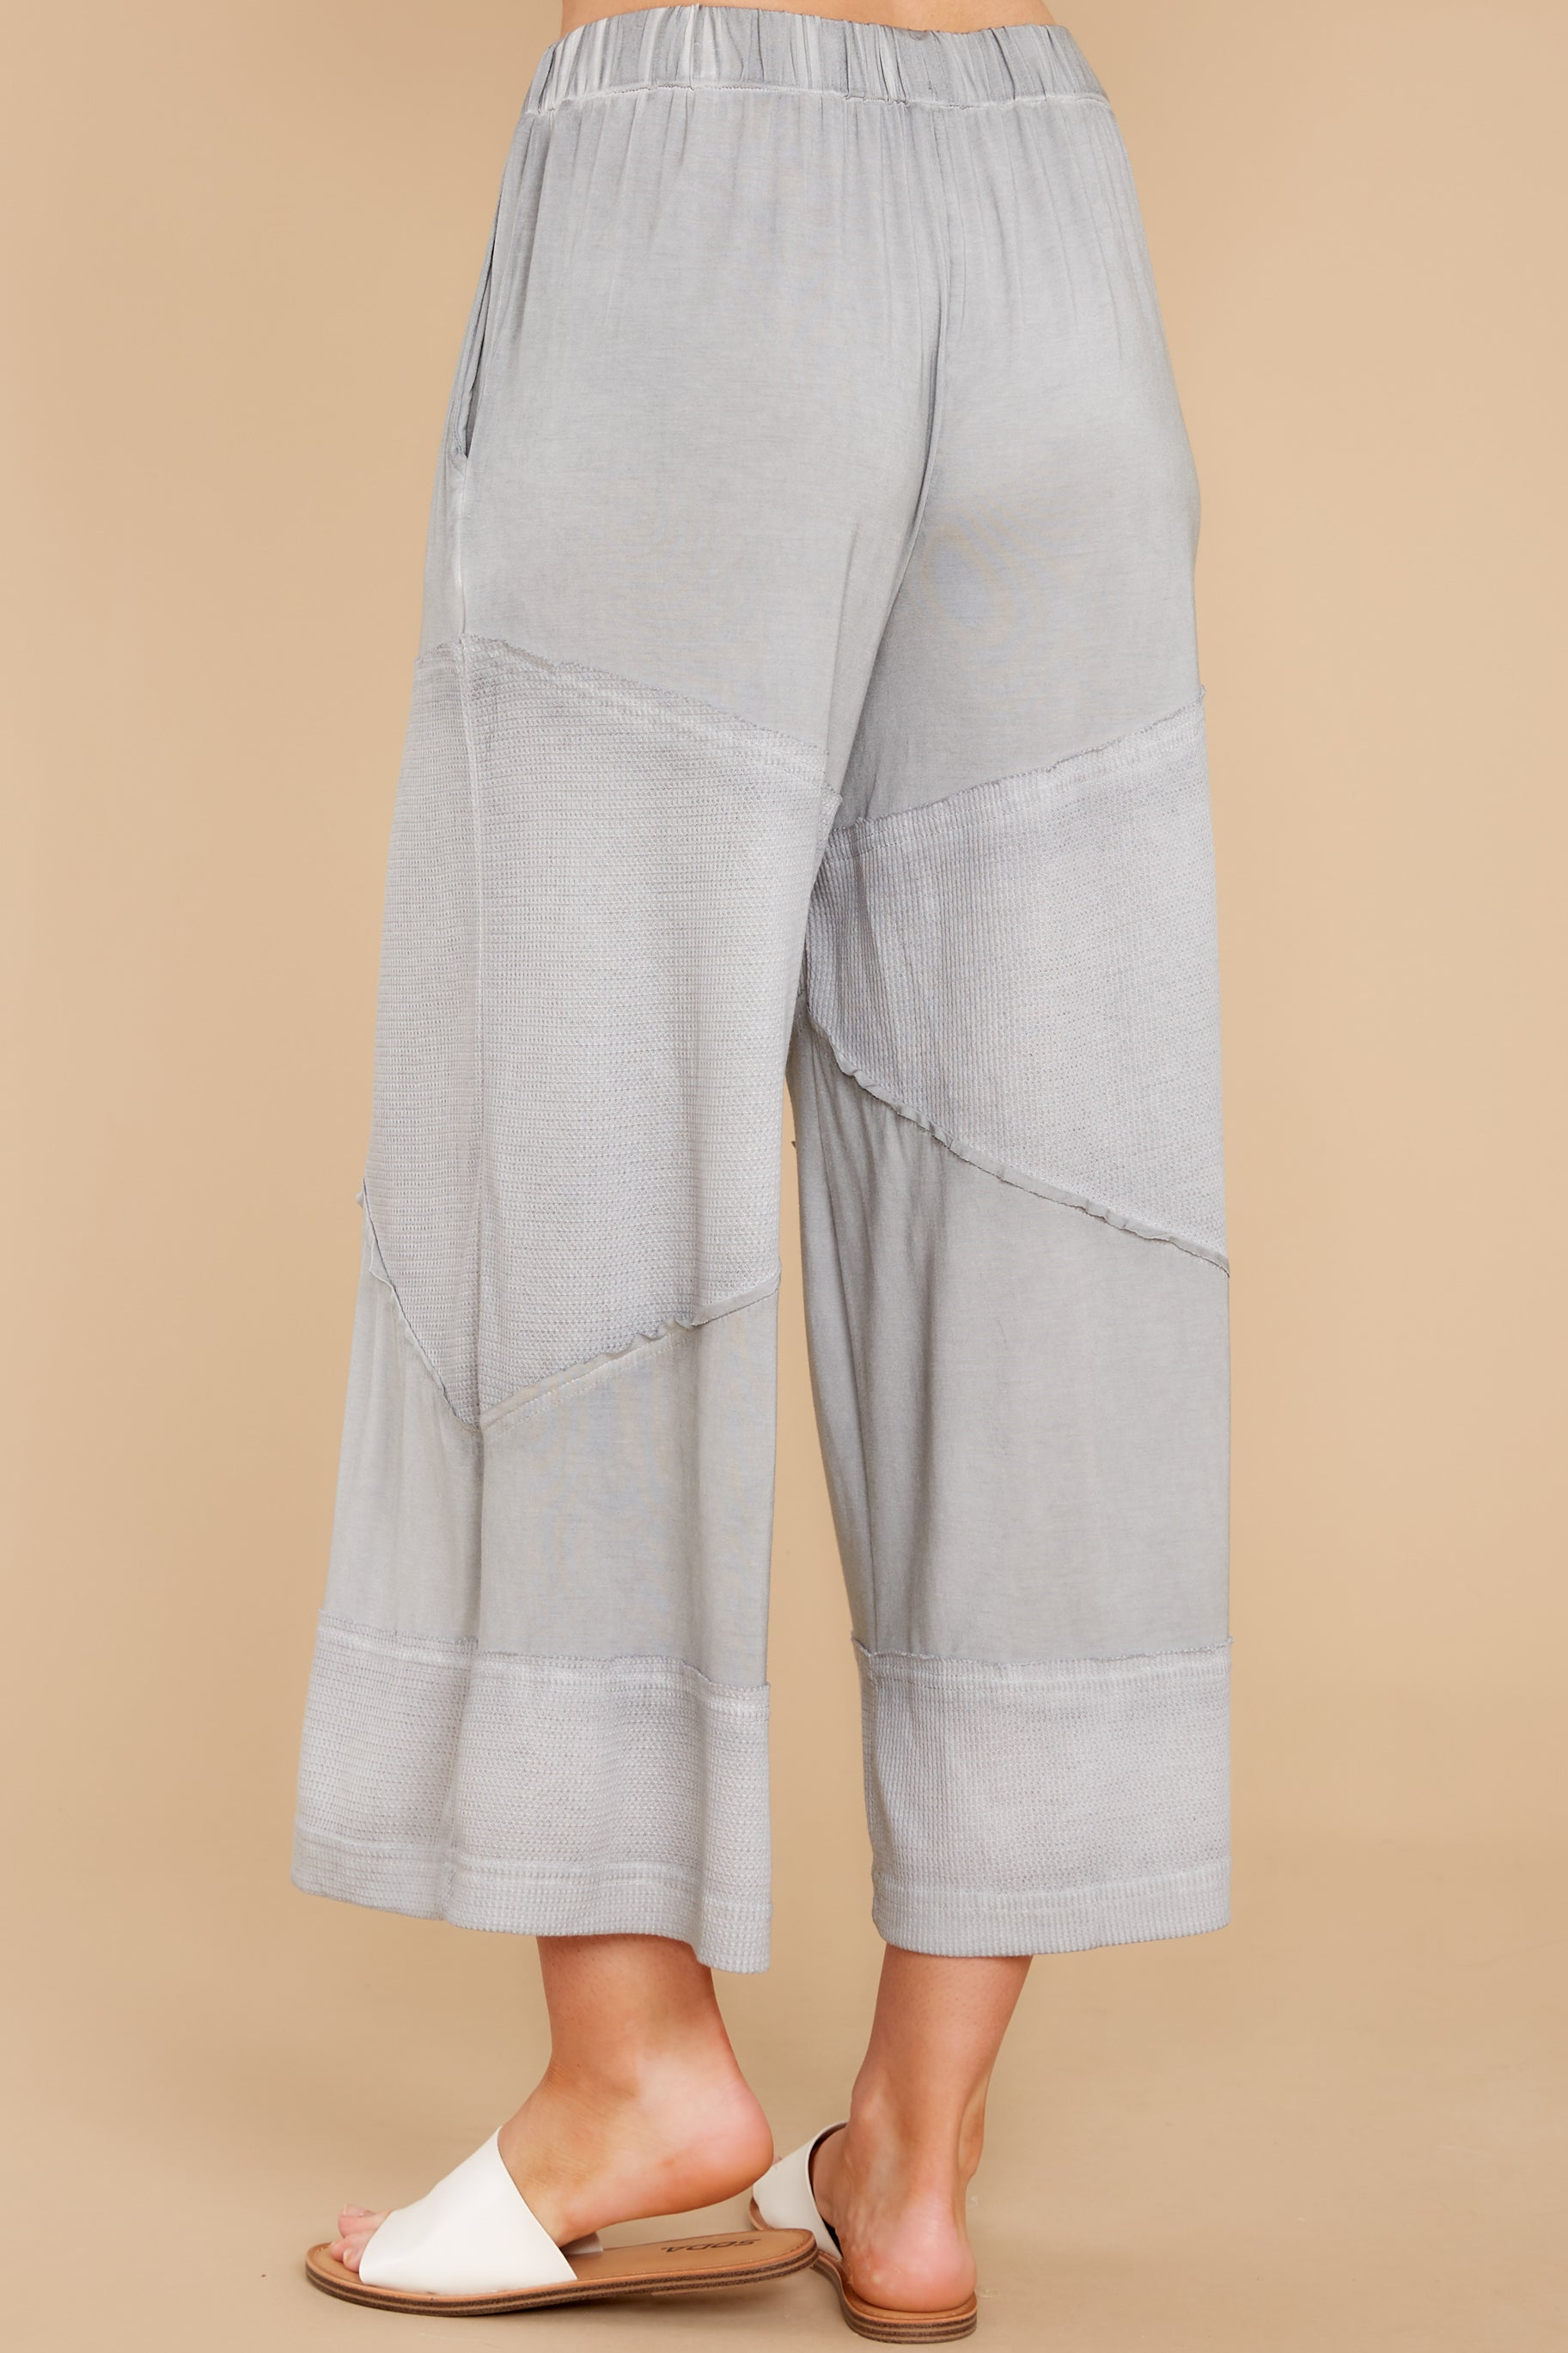 4 On The Other Side Dove Grey Pants at reddress.com